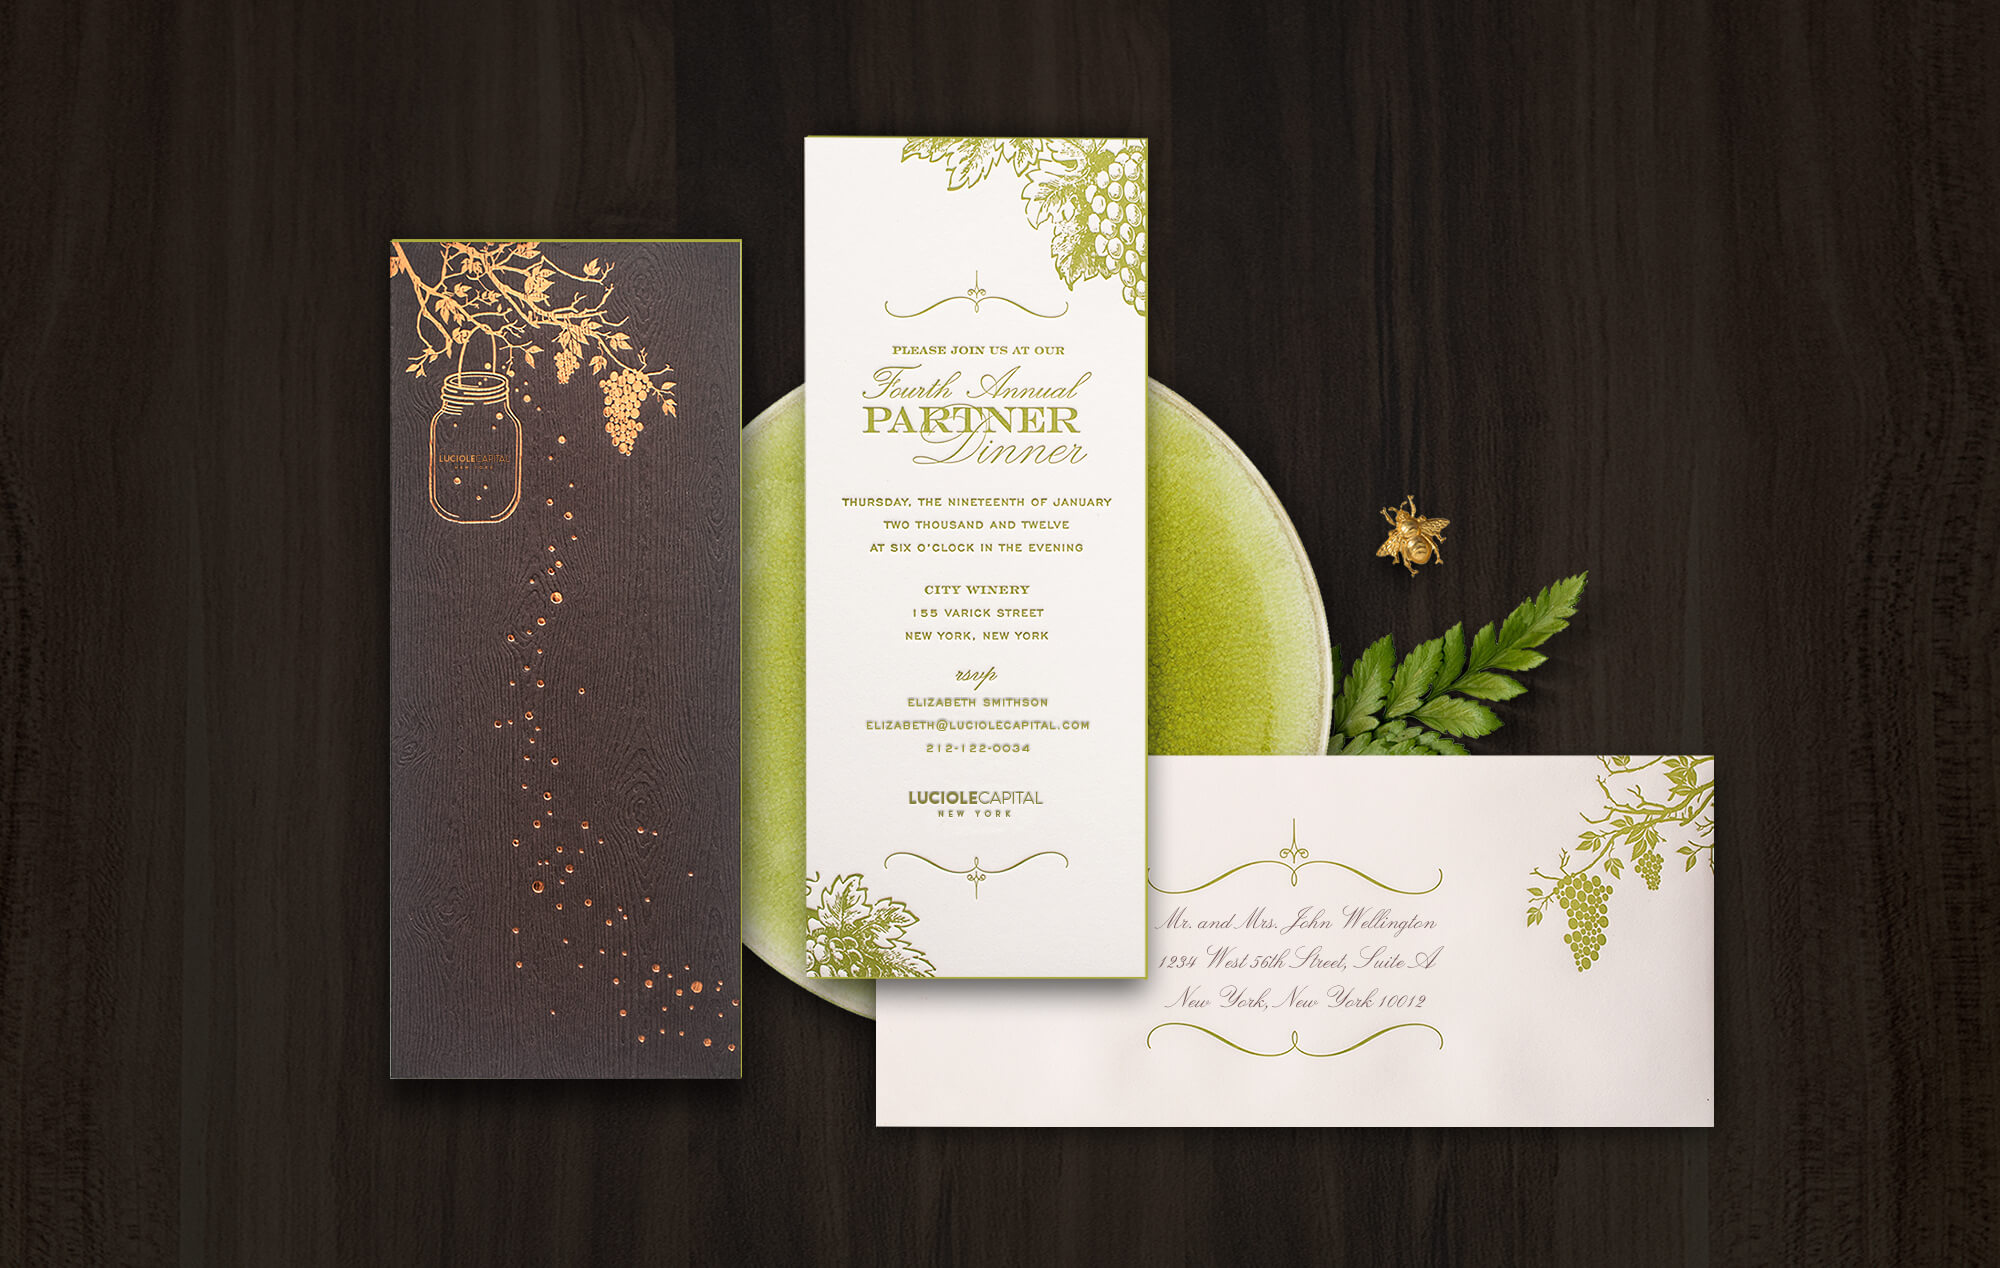 Wine and vineyard inspired corporate even invitation